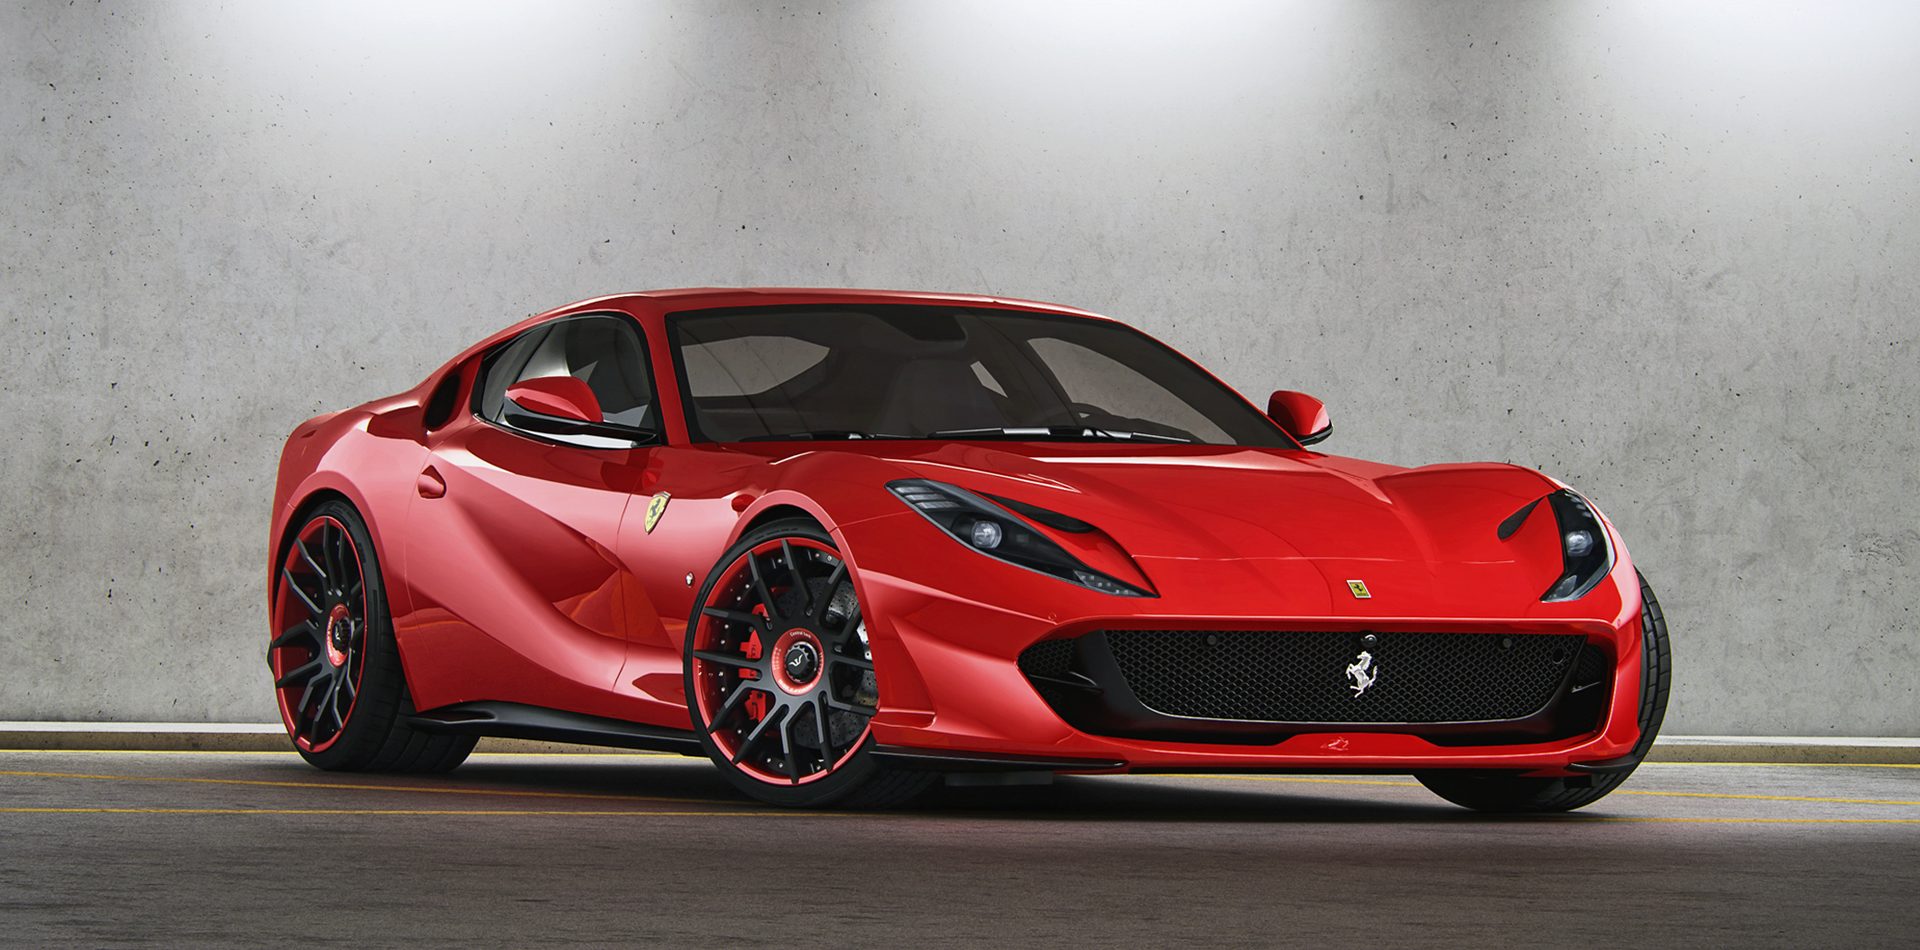 The stock Ferrari 812 Superfast comes with a V12 monster engine which can output up to 800 hp and 718 Nm of torque